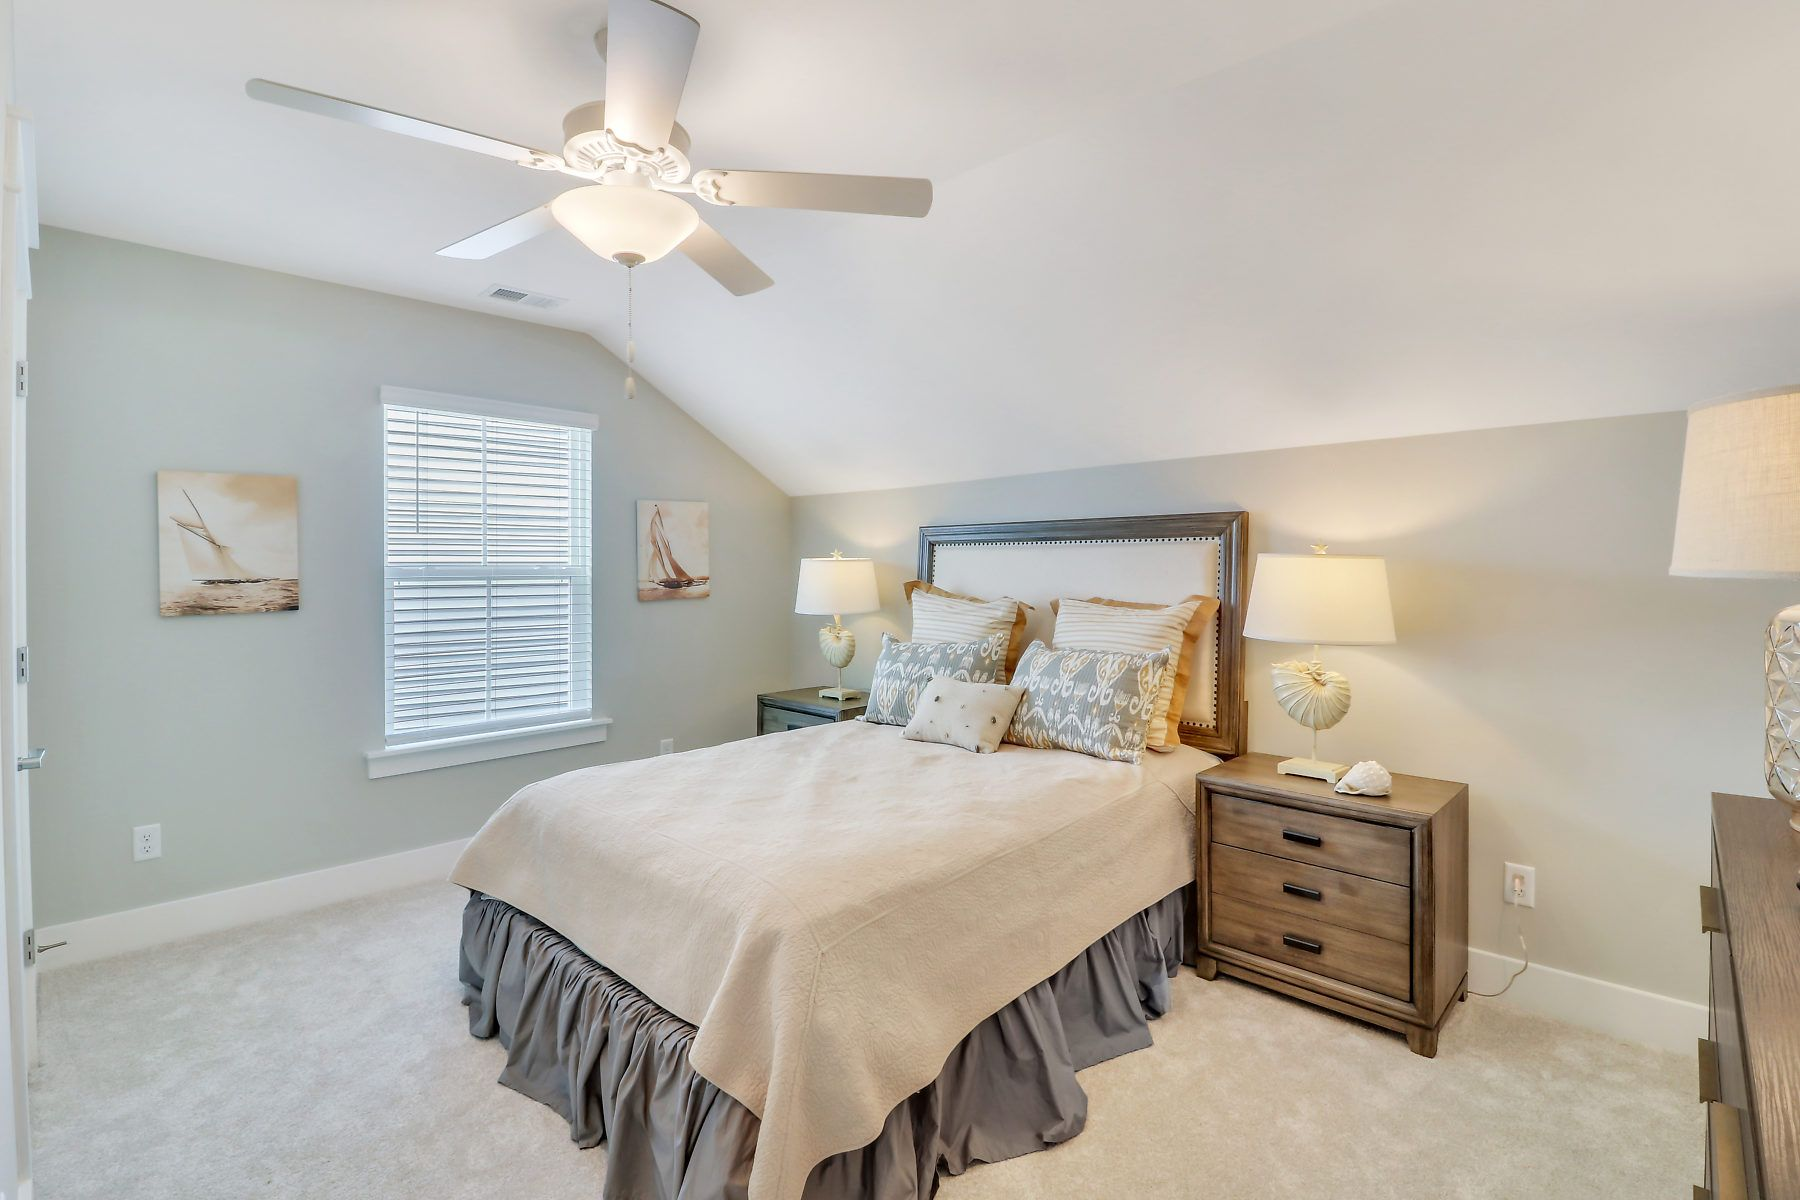 Bedroom featured in The Jasper By Village Park Homes in Hilton Head, SC